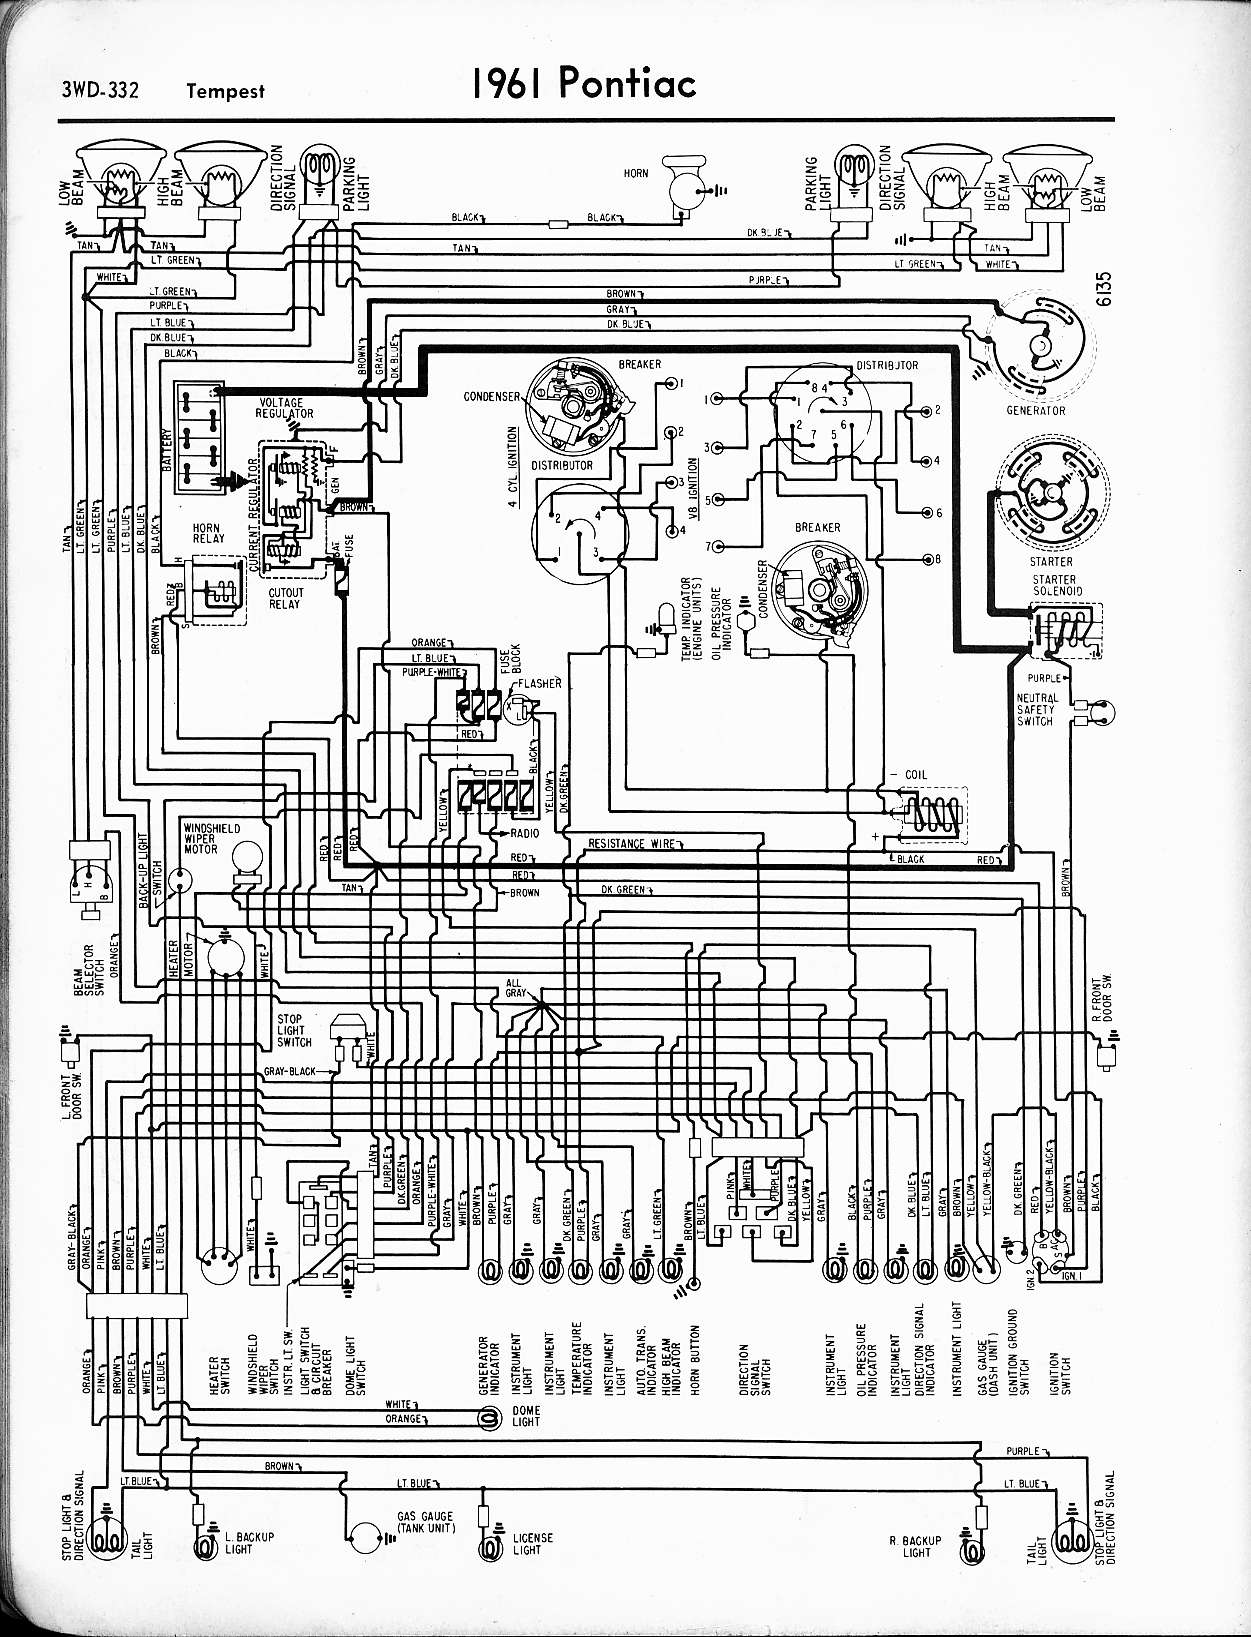 wallace racing wiring diagrams 1961 tempest wiring